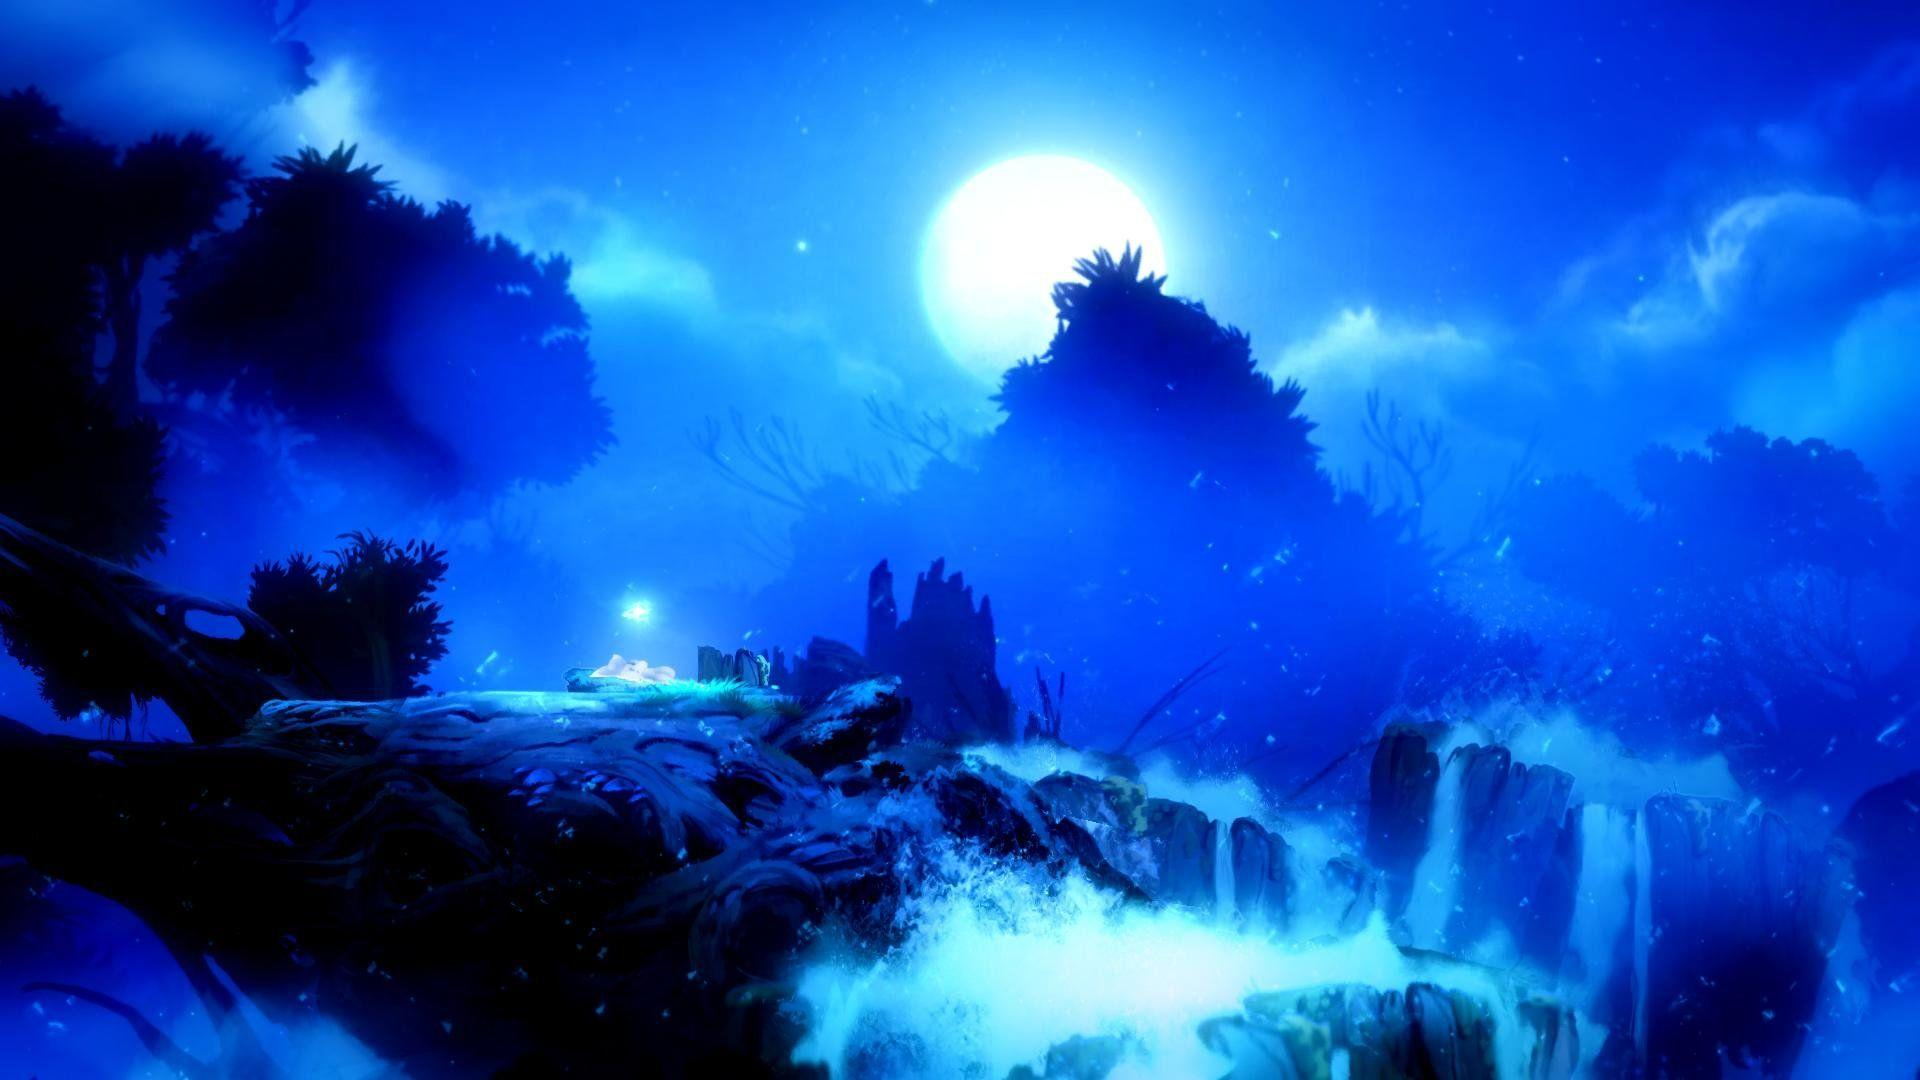 Download 1920x1080 Wallpapers Blue, Ori and The Will of The Wisps